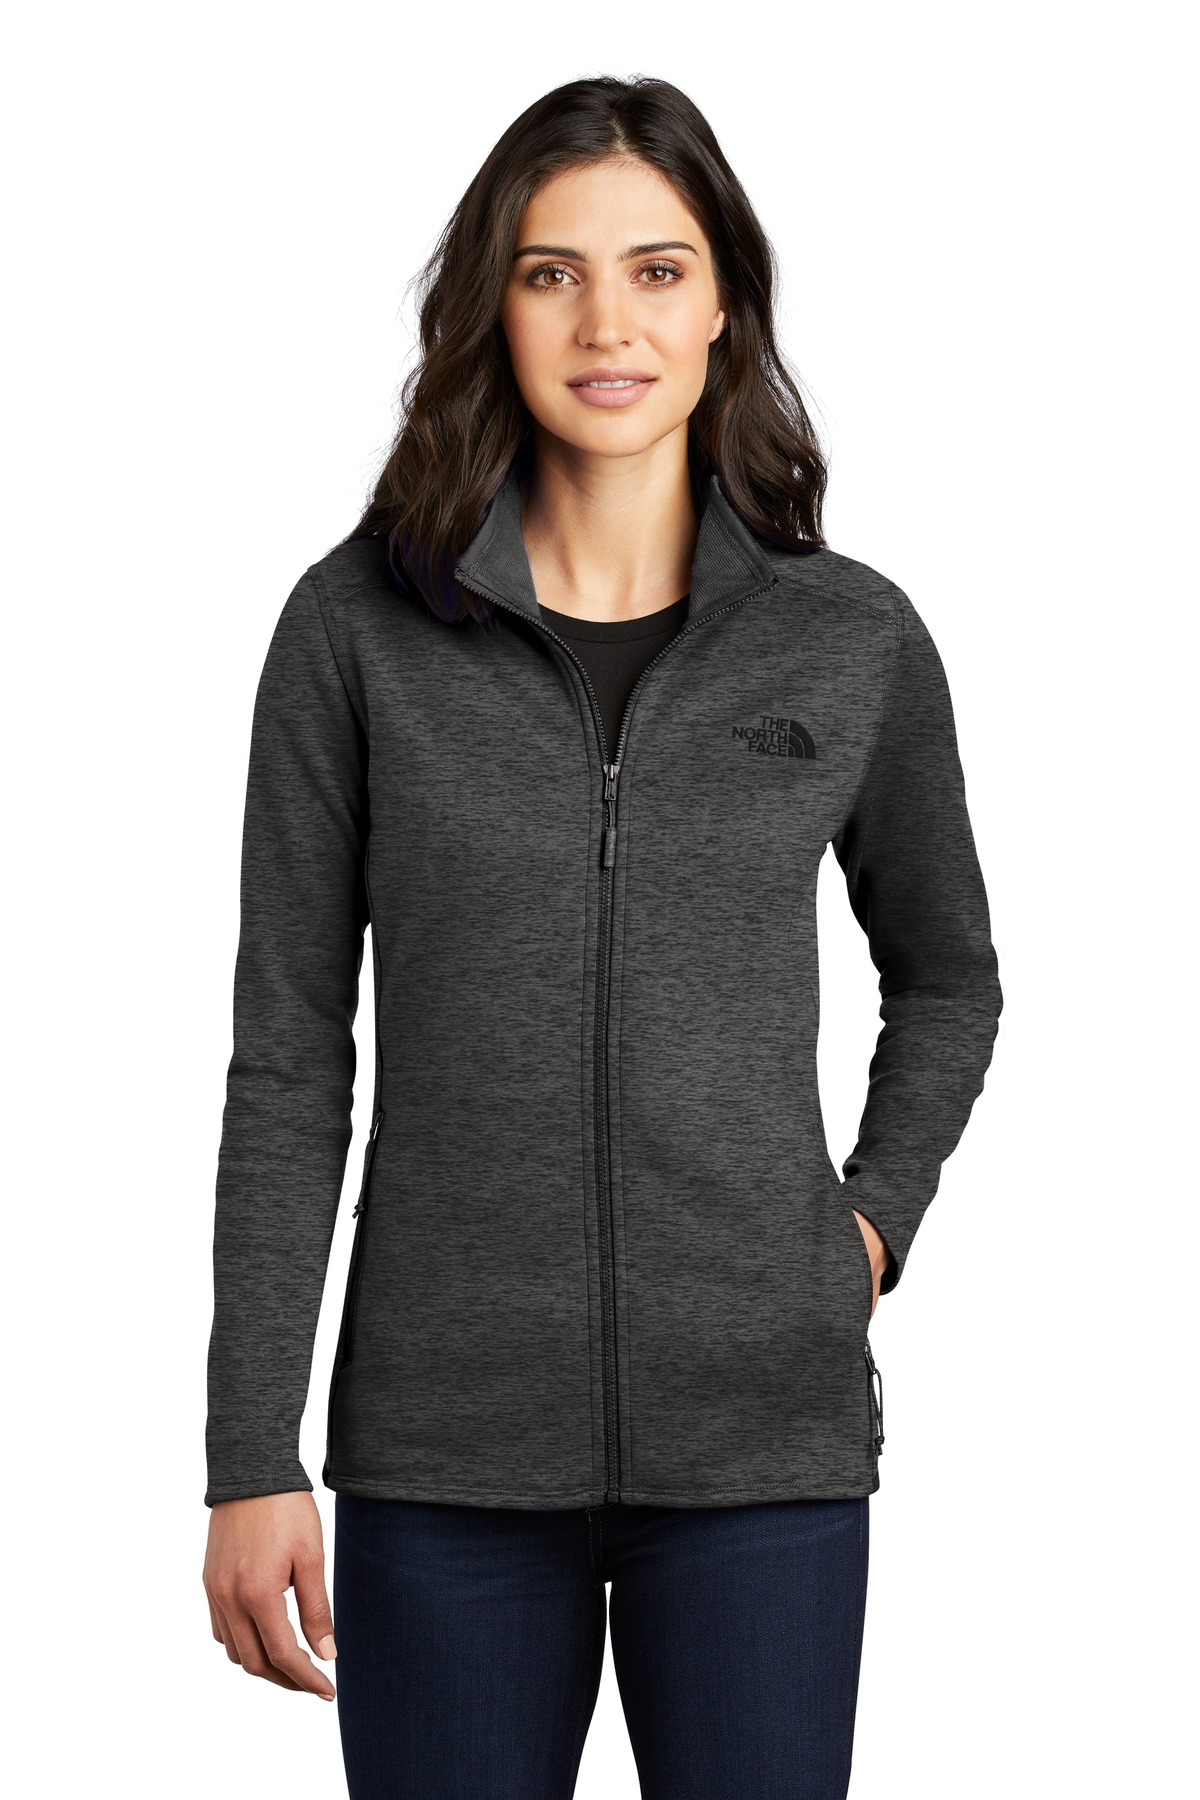 The North Face  ®  Ladies Skyline Full-Zip Fleece Jacket NF0A47F6 - TNF Dark Grey Heather